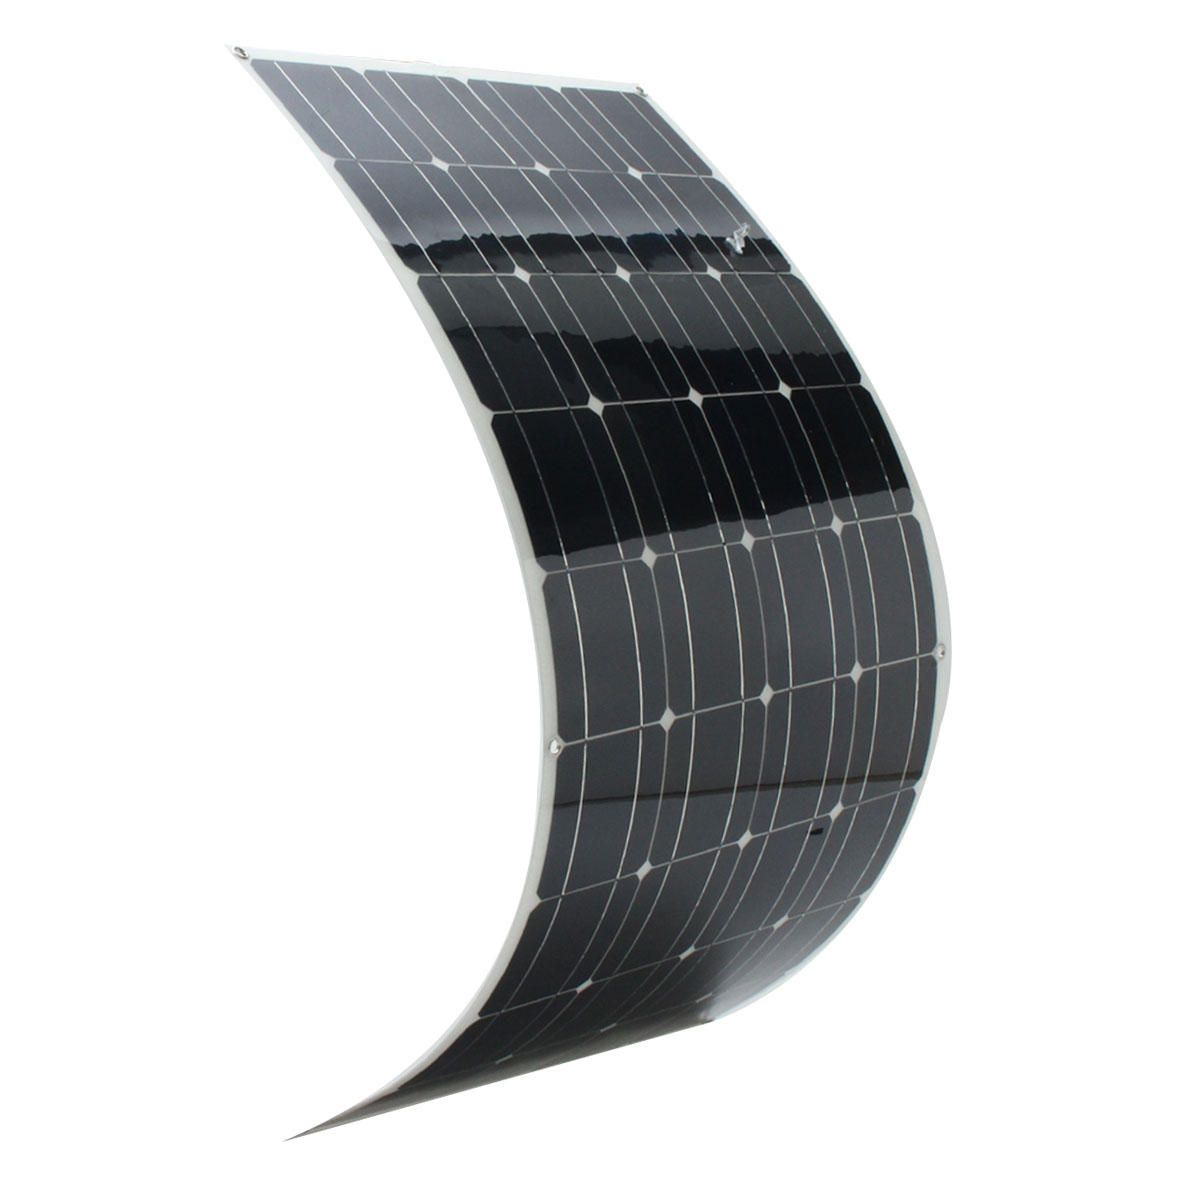 Elfeland Sp 36 120w 12v 1180 540mm Monocrystalline Semi Flexible Solar Panel With 1 5m Cable Module Board From Electronic Components Supplies On Banggood Com